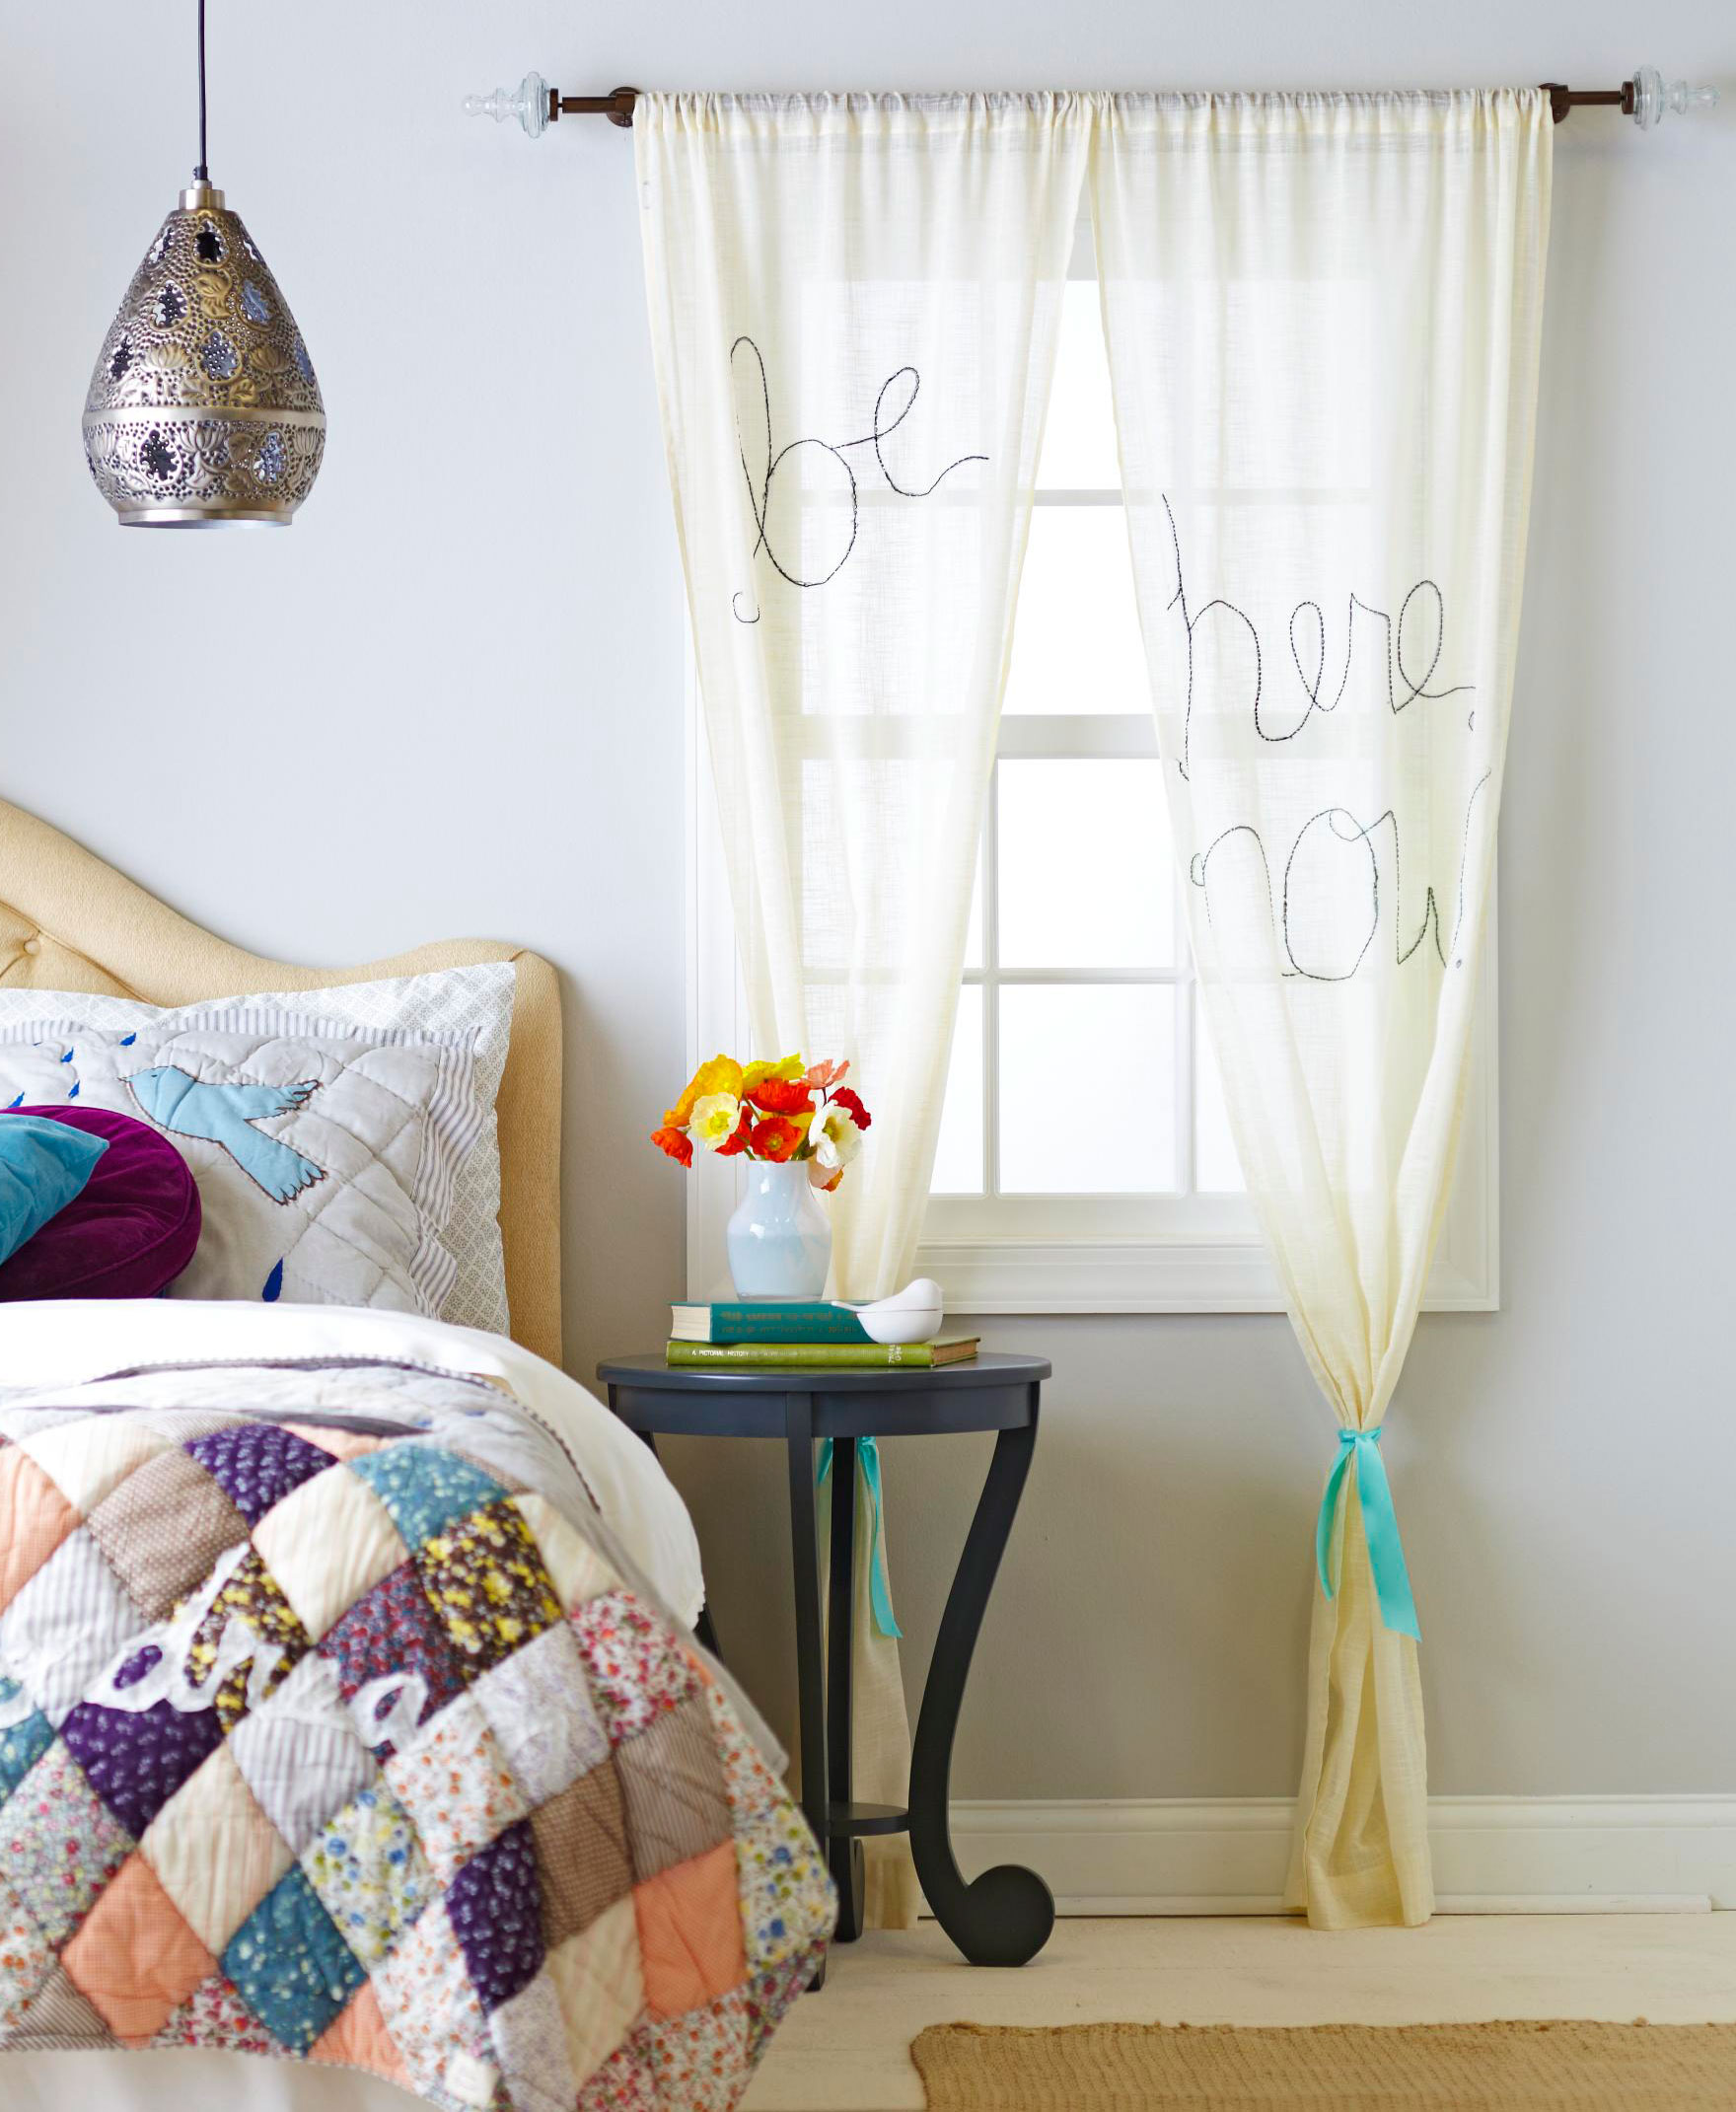 15 DIY Curtain Makeovers